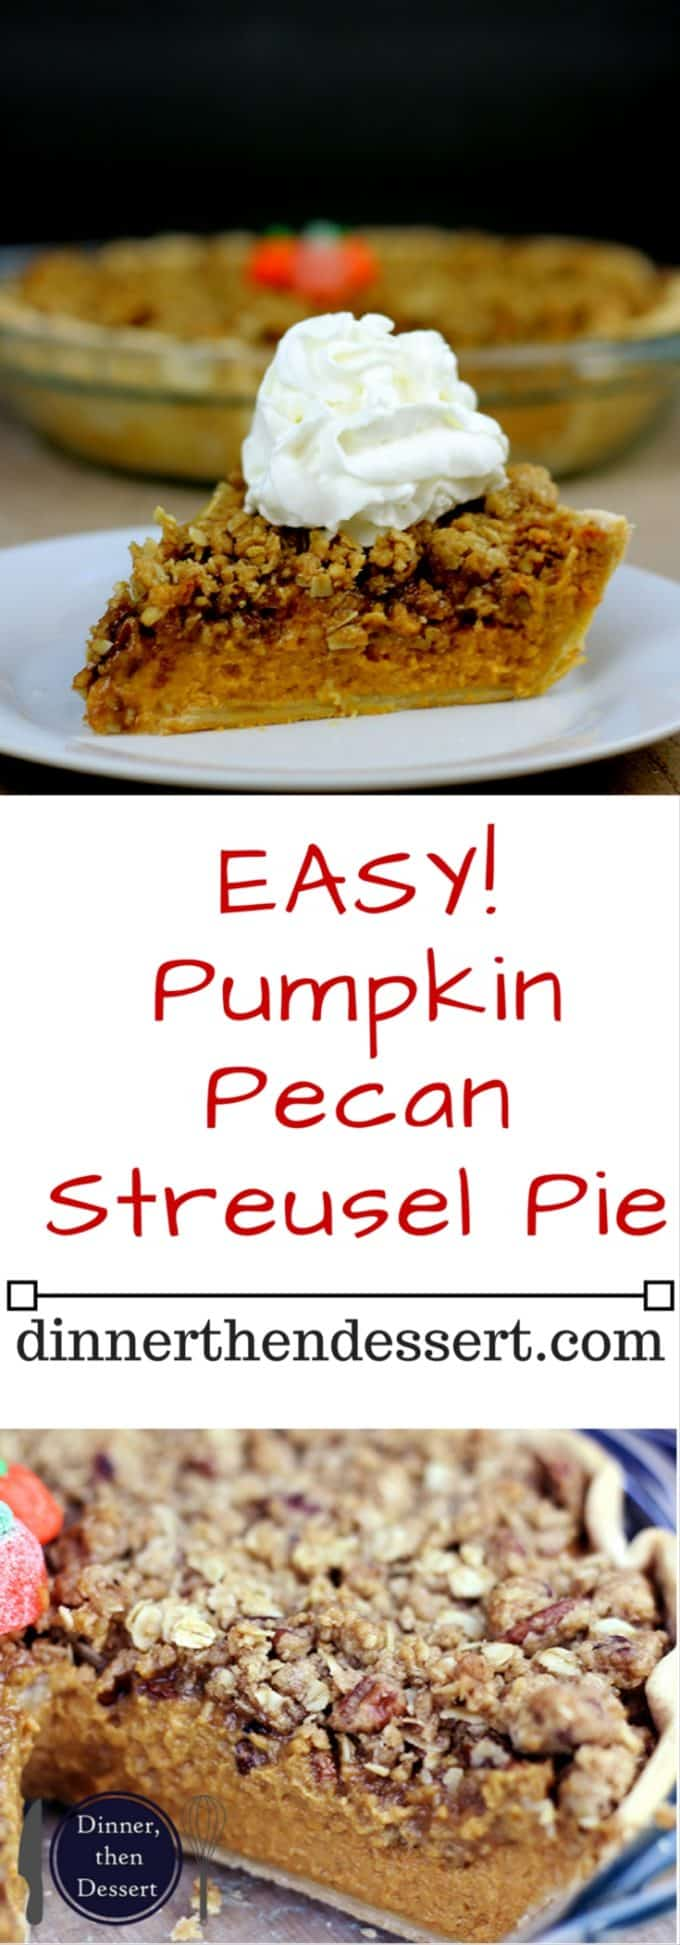 The only pie you'll need on your Thanksgiving dessert table, delicious Pumpkin pie with dark brown sugar topped with a Rich Pecan Streusel topping. Who says you need to choose pumpkin OR pecan pie?